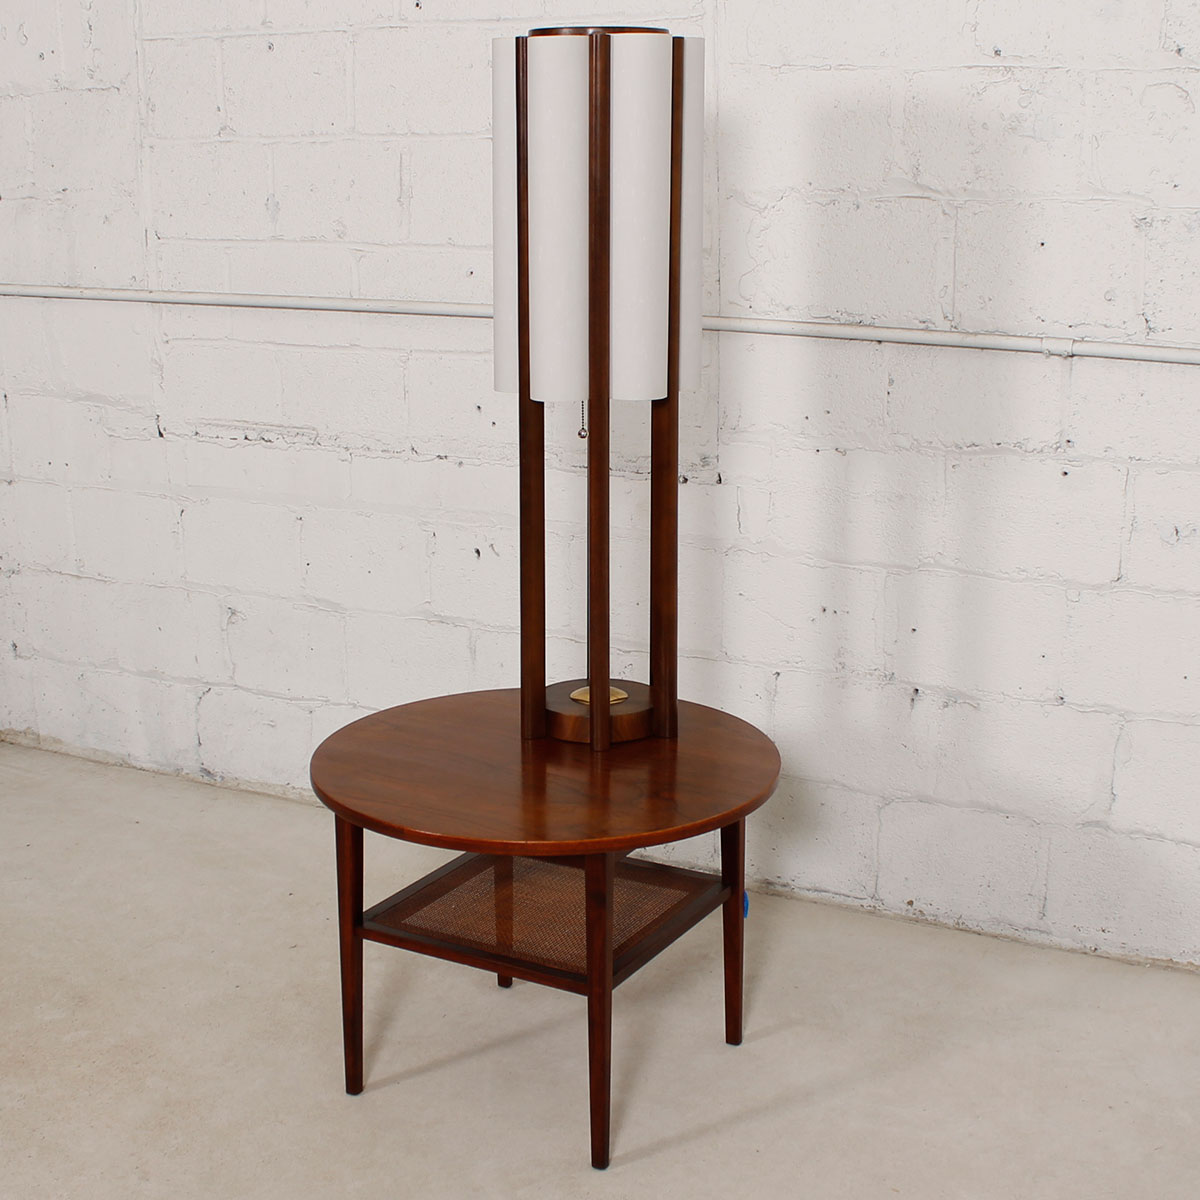 Architectural Modernist Tall Table / Floor Lamp